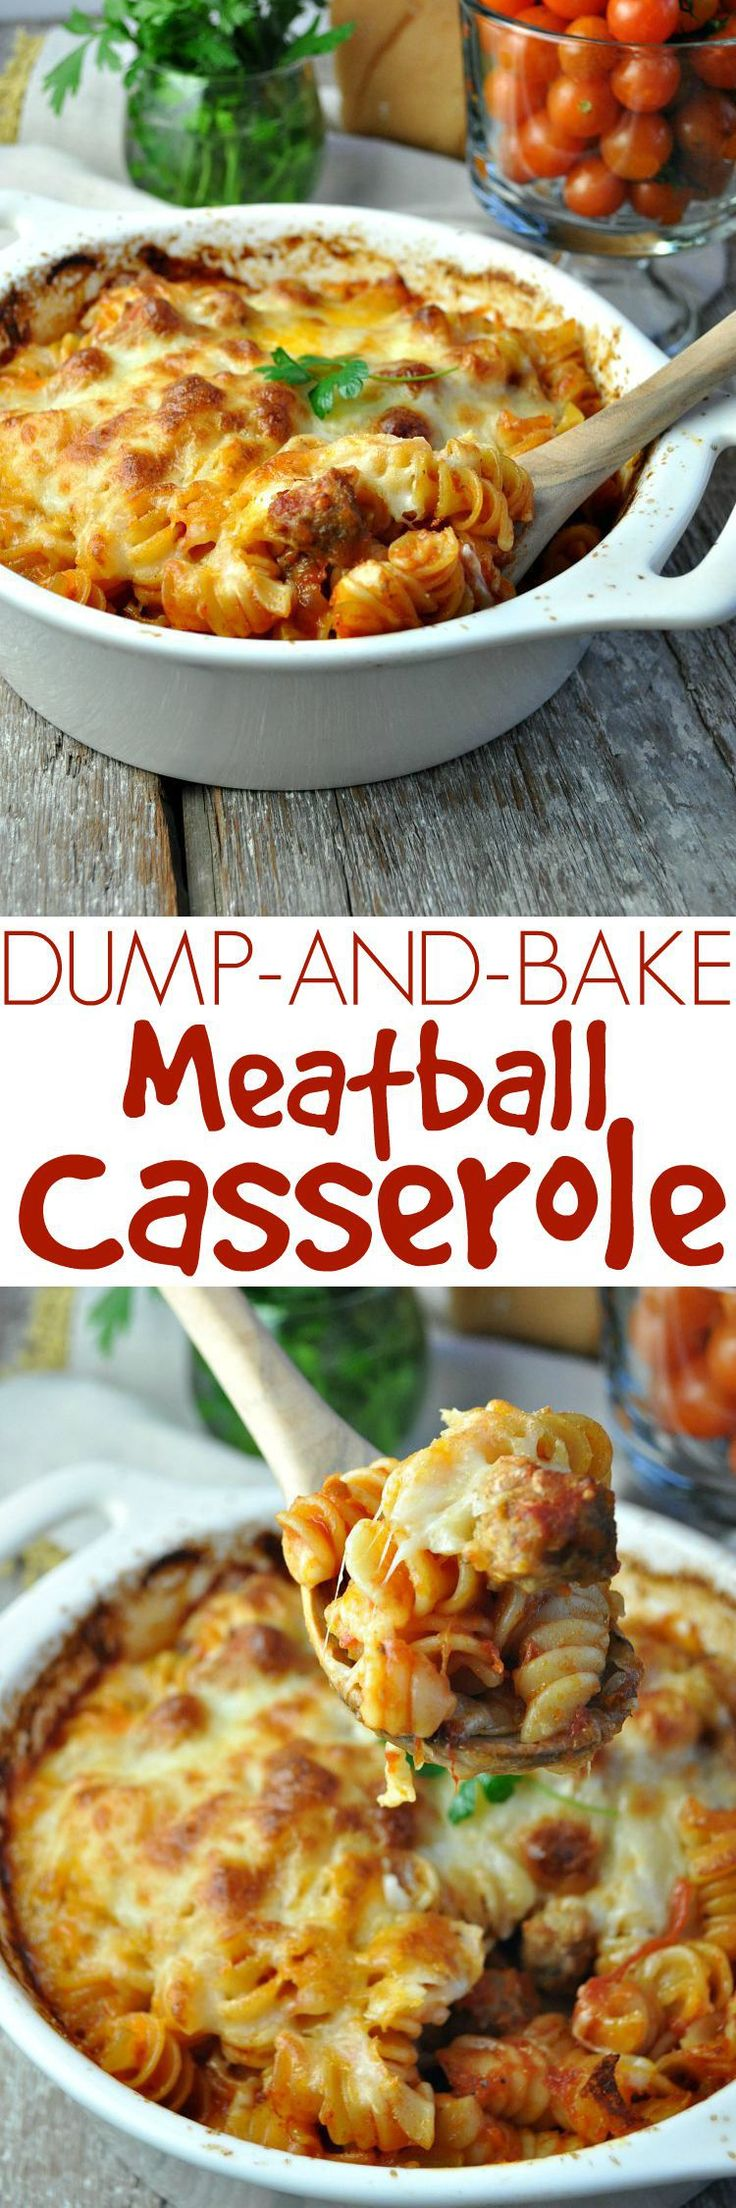 You don't even have to boil the pasta with this easy Dump-and-Bake Meatball Casserole!